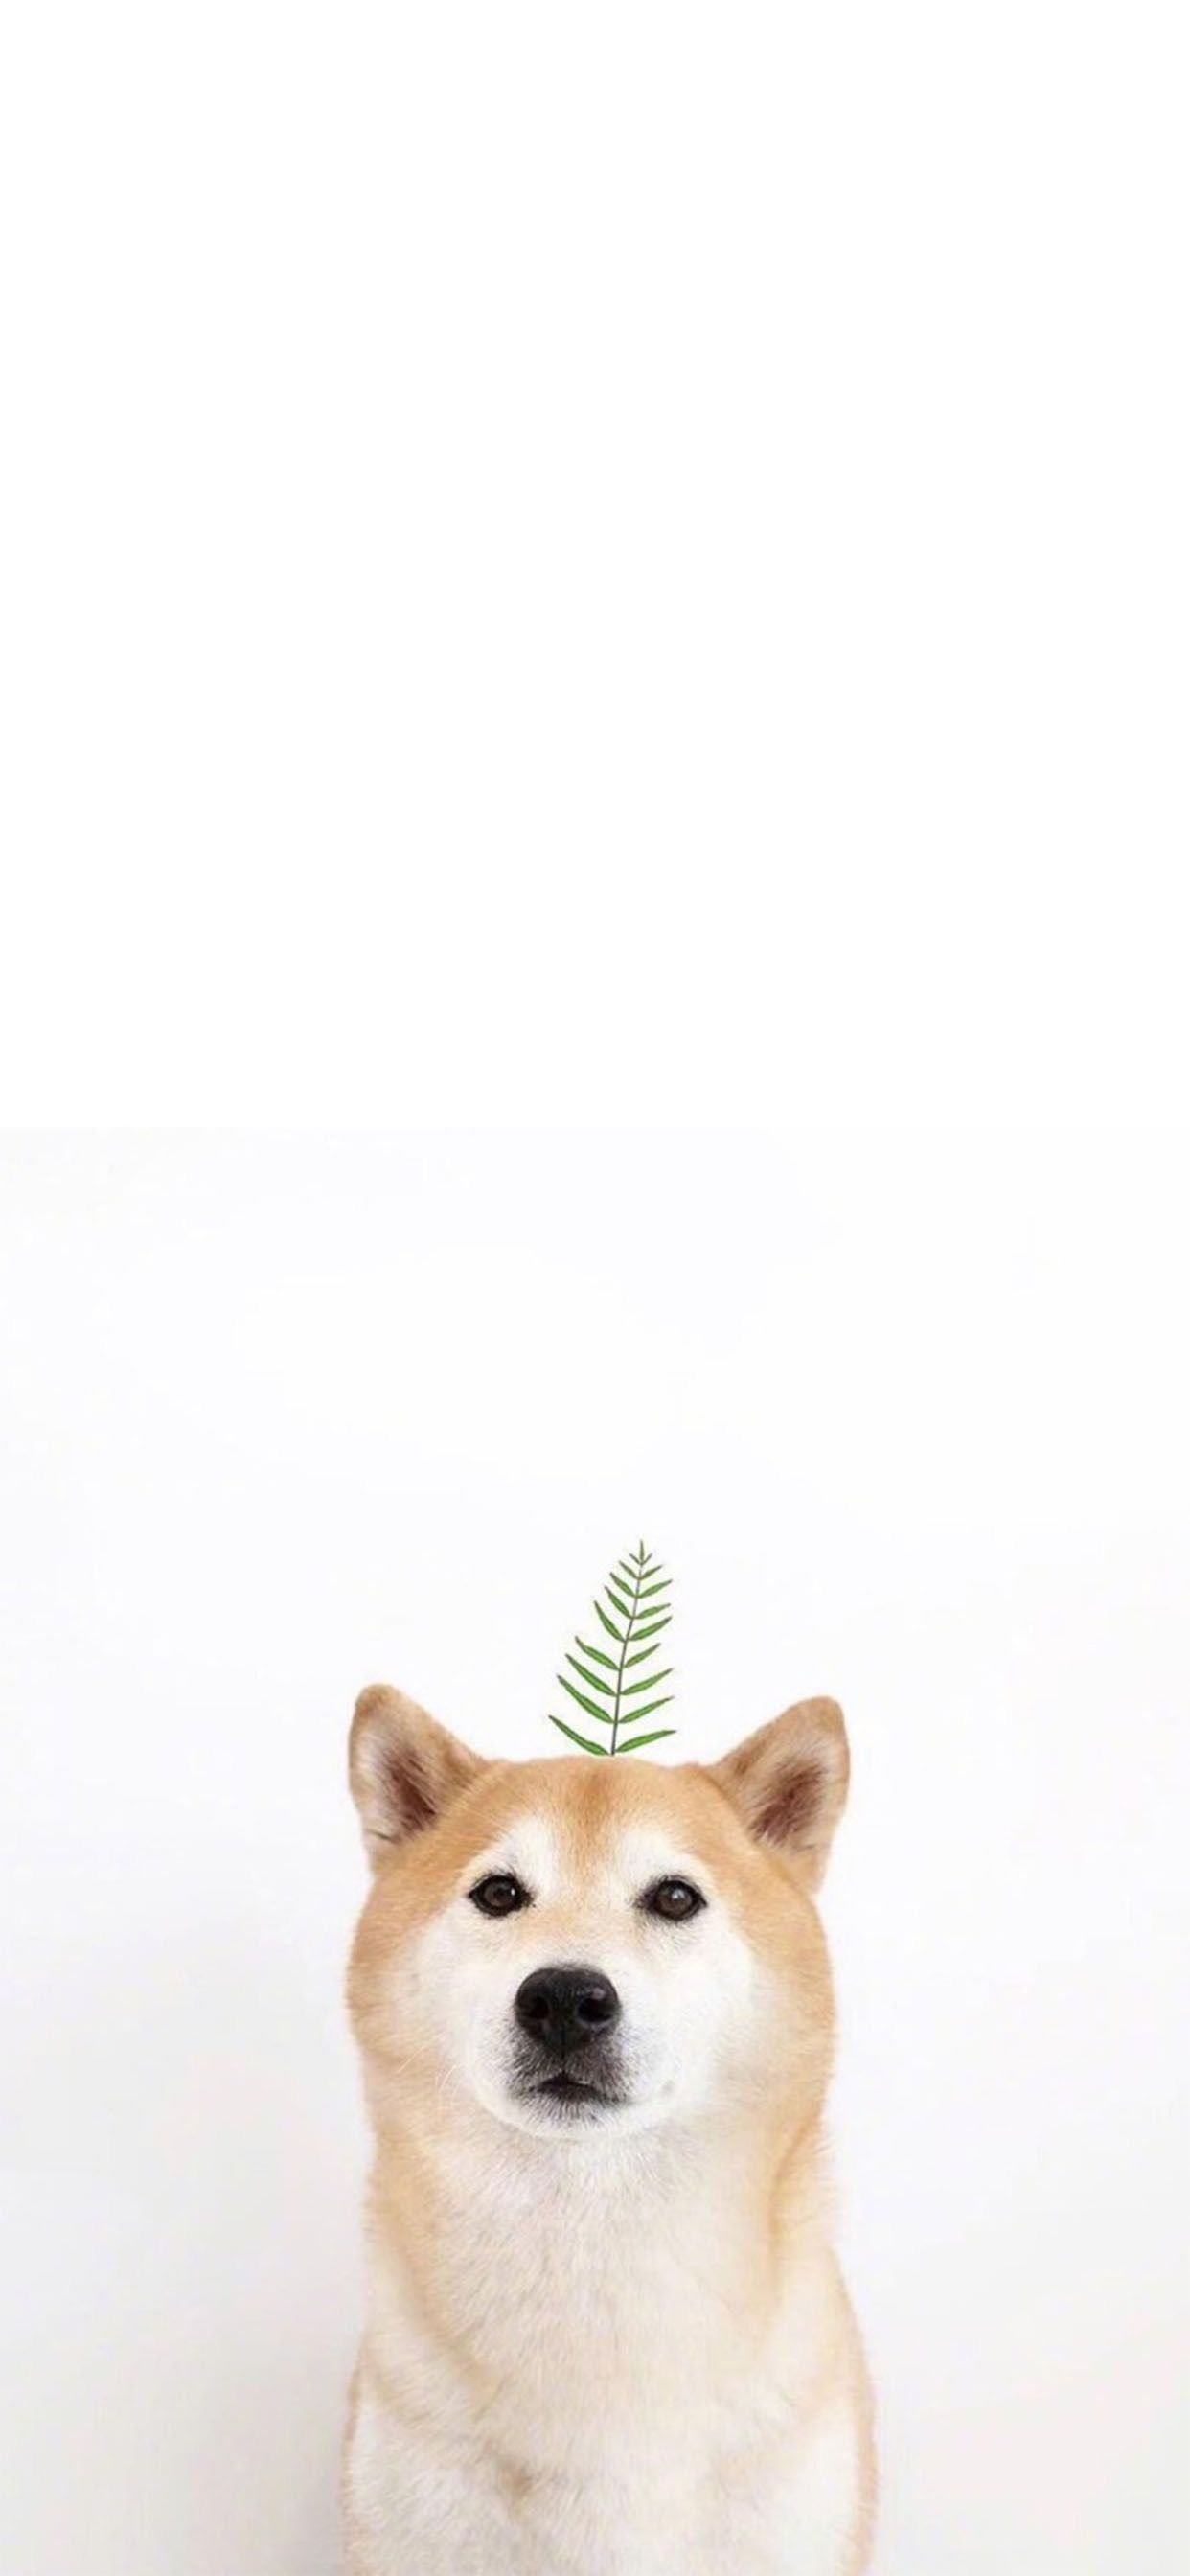 Pin by Nicole Andrea Gene on DOG PHONE WALLPAPERS Cute animals 1242x2688